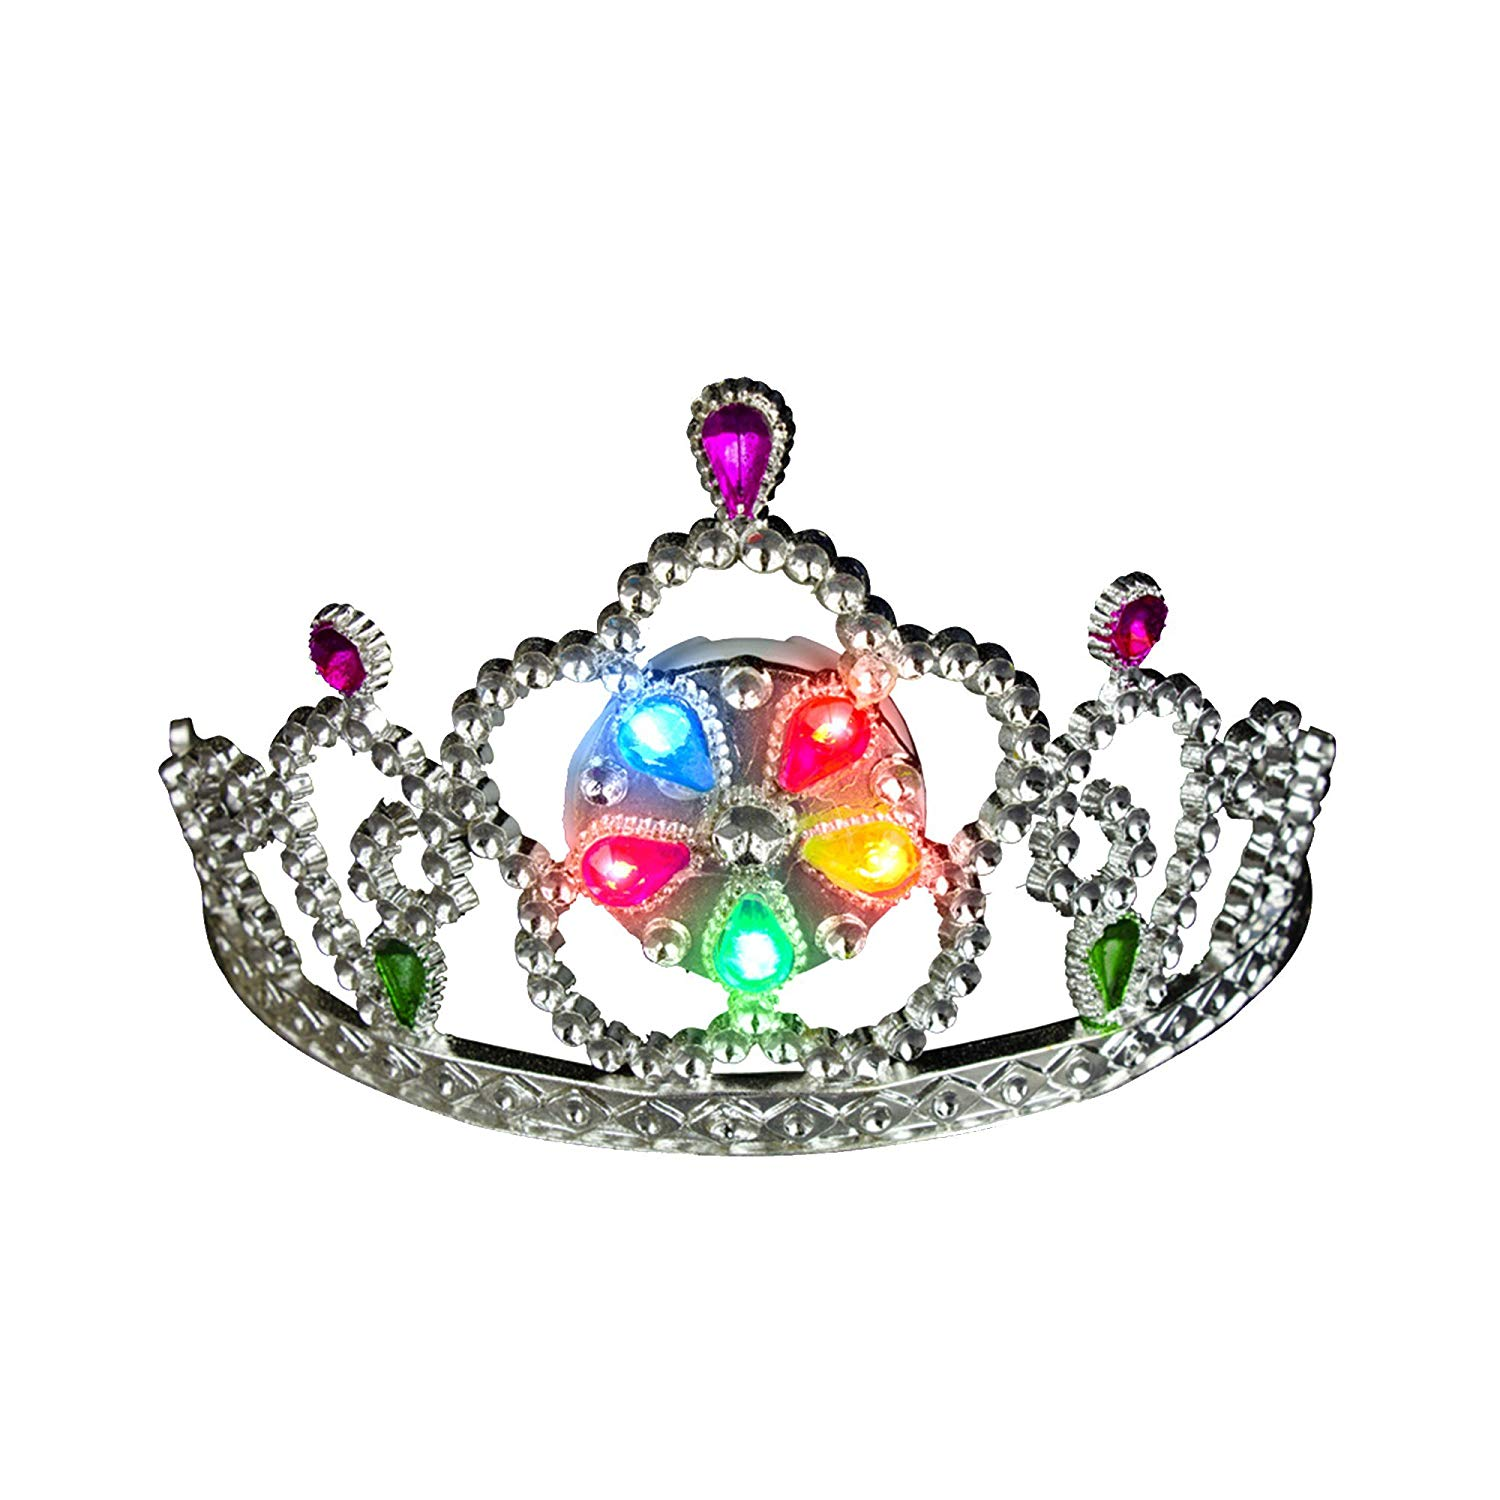 Led Princess Tiara Magic Matt S Brilliant Blinkys